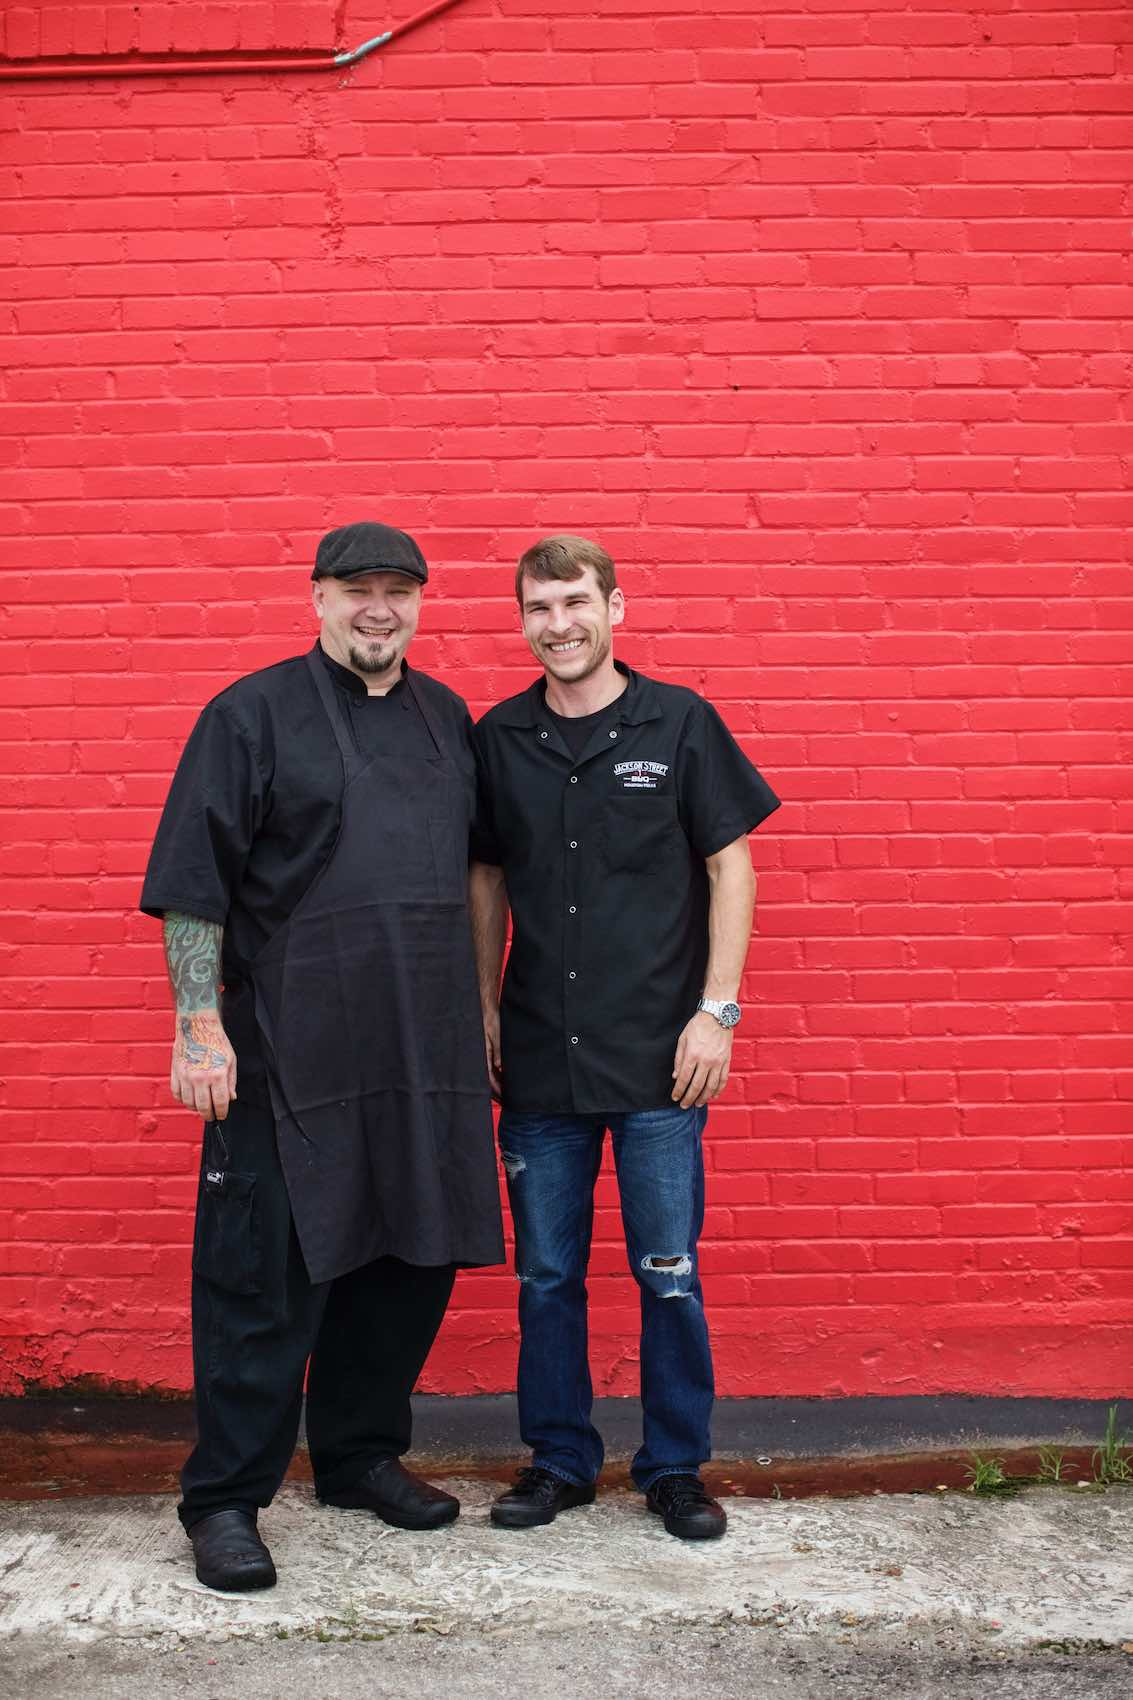 Jody Horton Photography - Chefs standing against painted red brick wall.